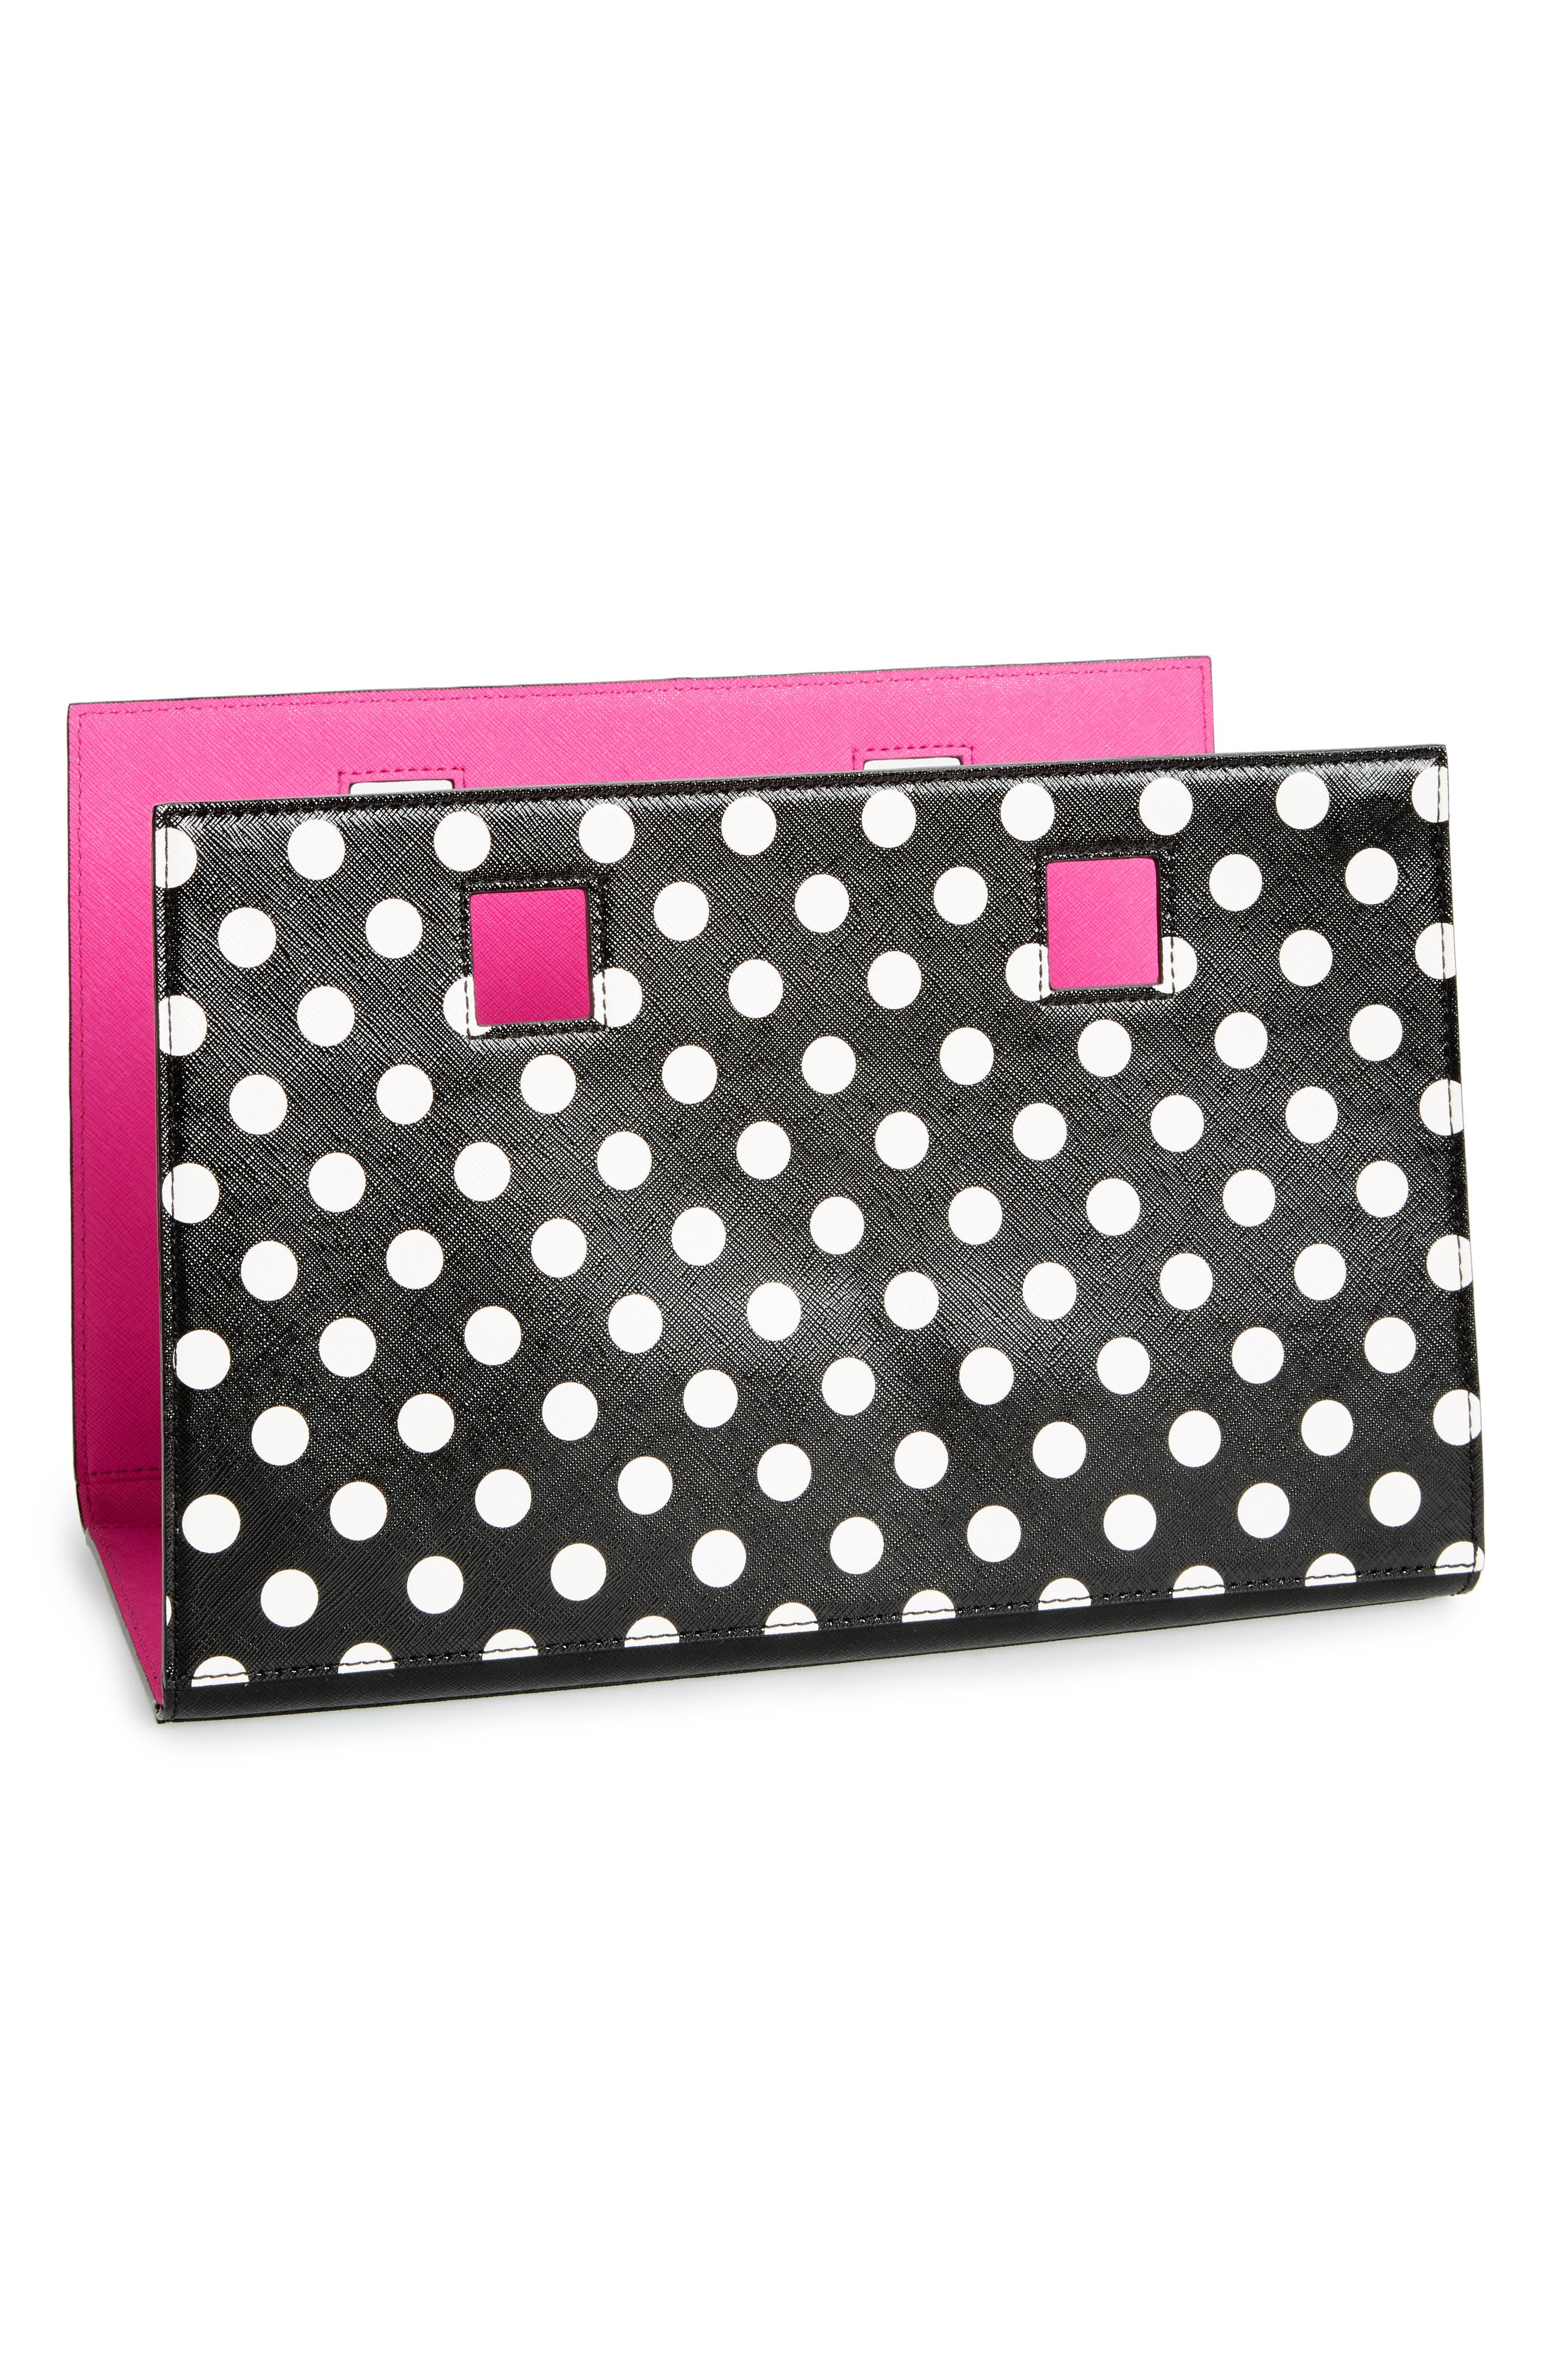 make it mine reversible polka dot/solid leather snap-on accent flap,                         Main,                         color, Blk/ Vivdsn